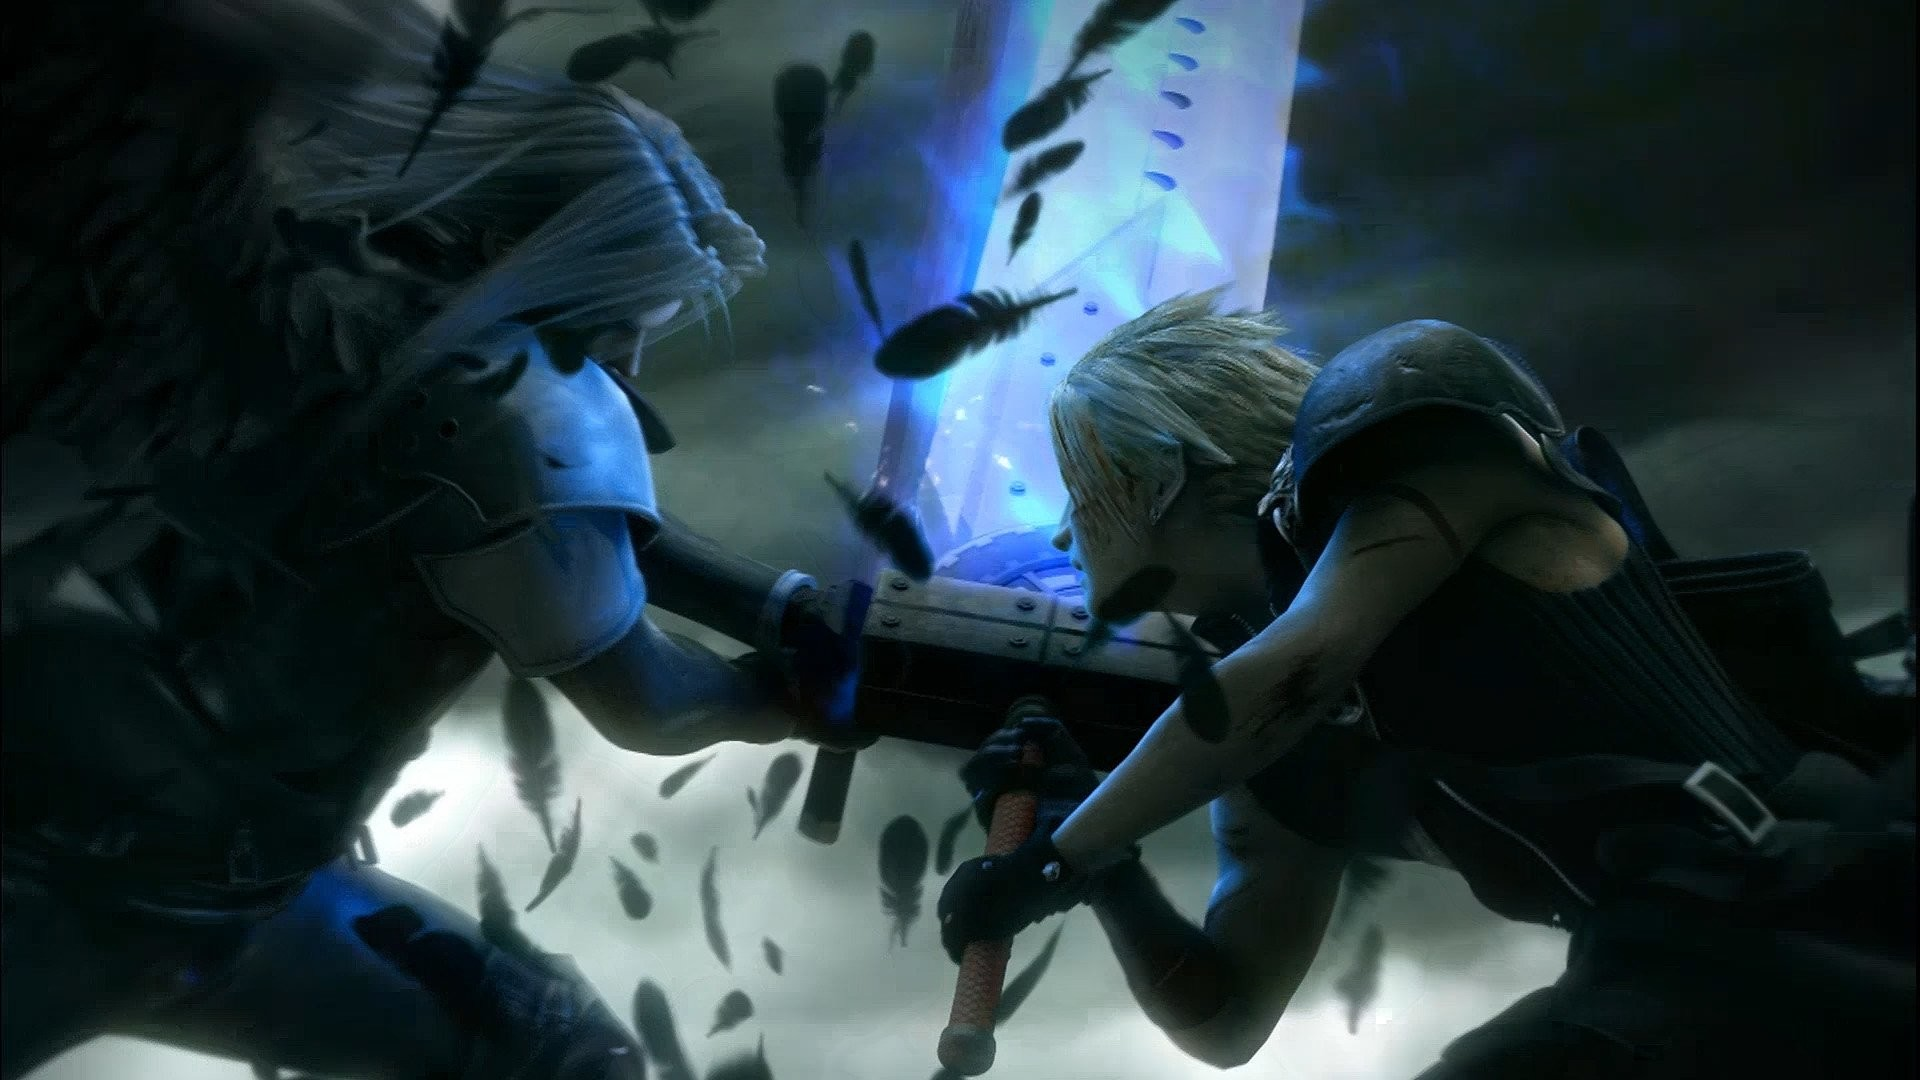 1920x1080 Movie - Final Fantasy VII: Advent Children Final Fantasy Cloud Strife  Sephiroth (Final Fantasy